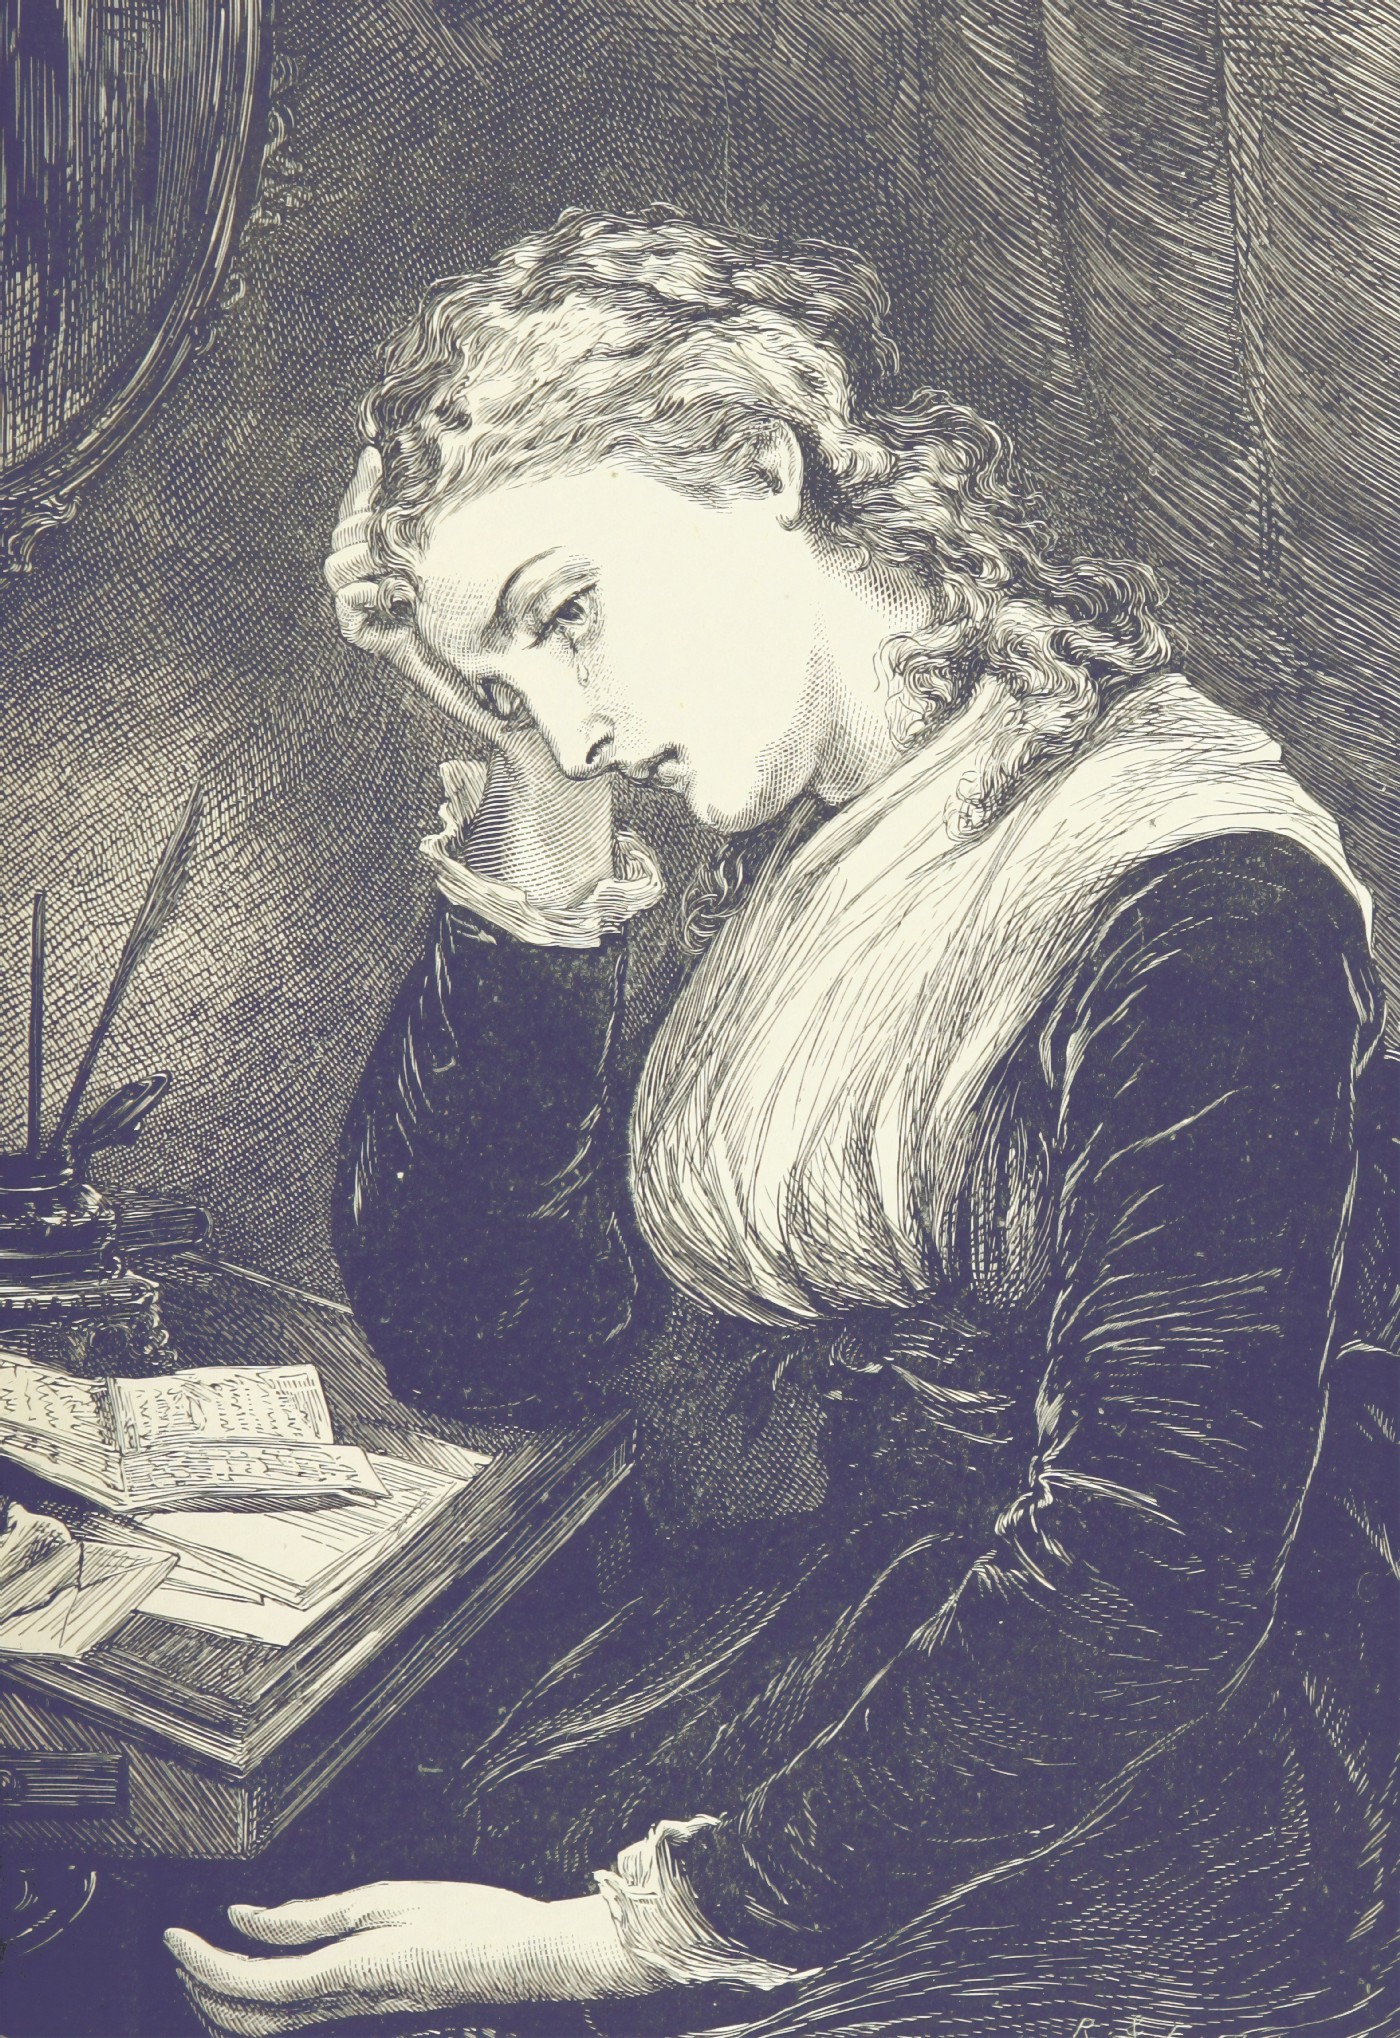 A Victorian drawing of a crying woman.